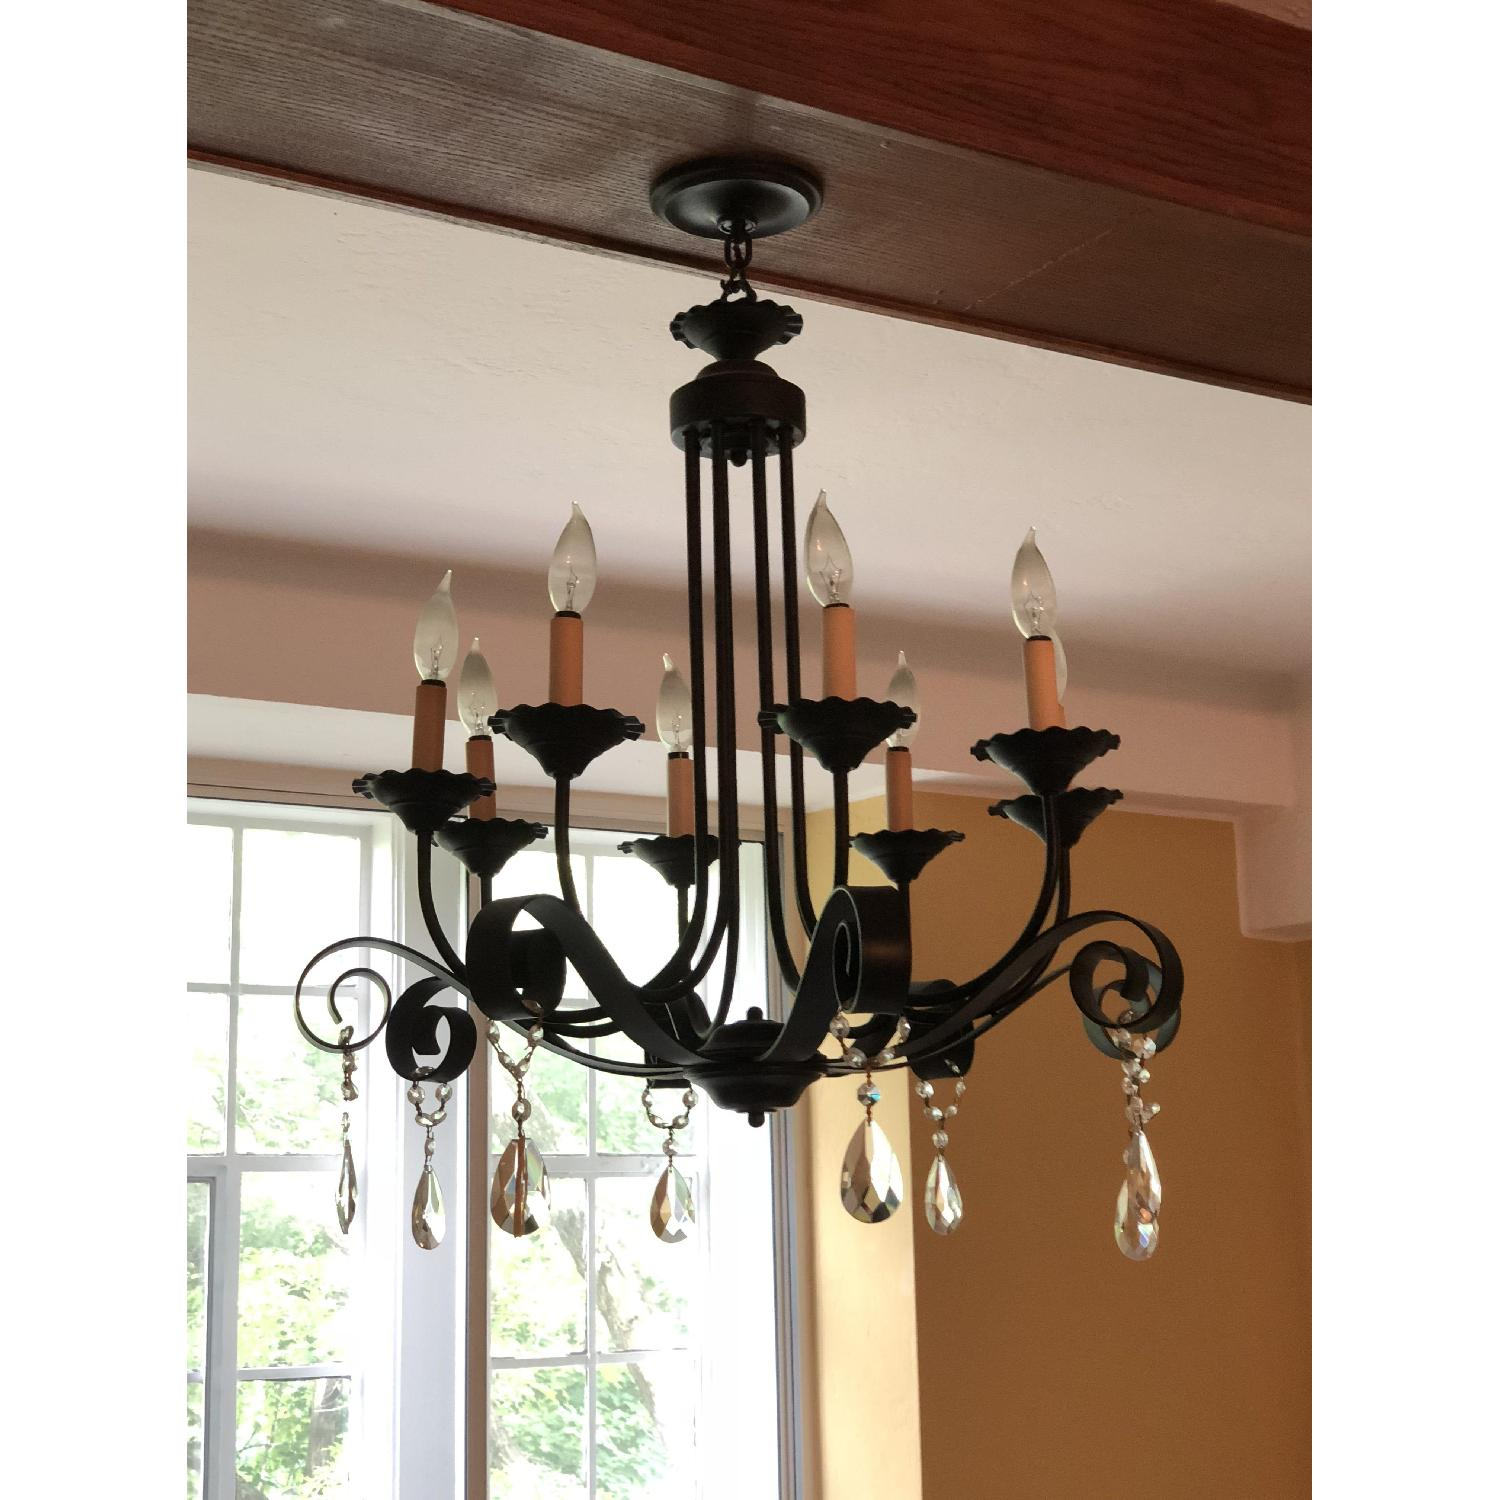 8-Candle Wrought-Iron Crystal-Accented Black Chandelier-0